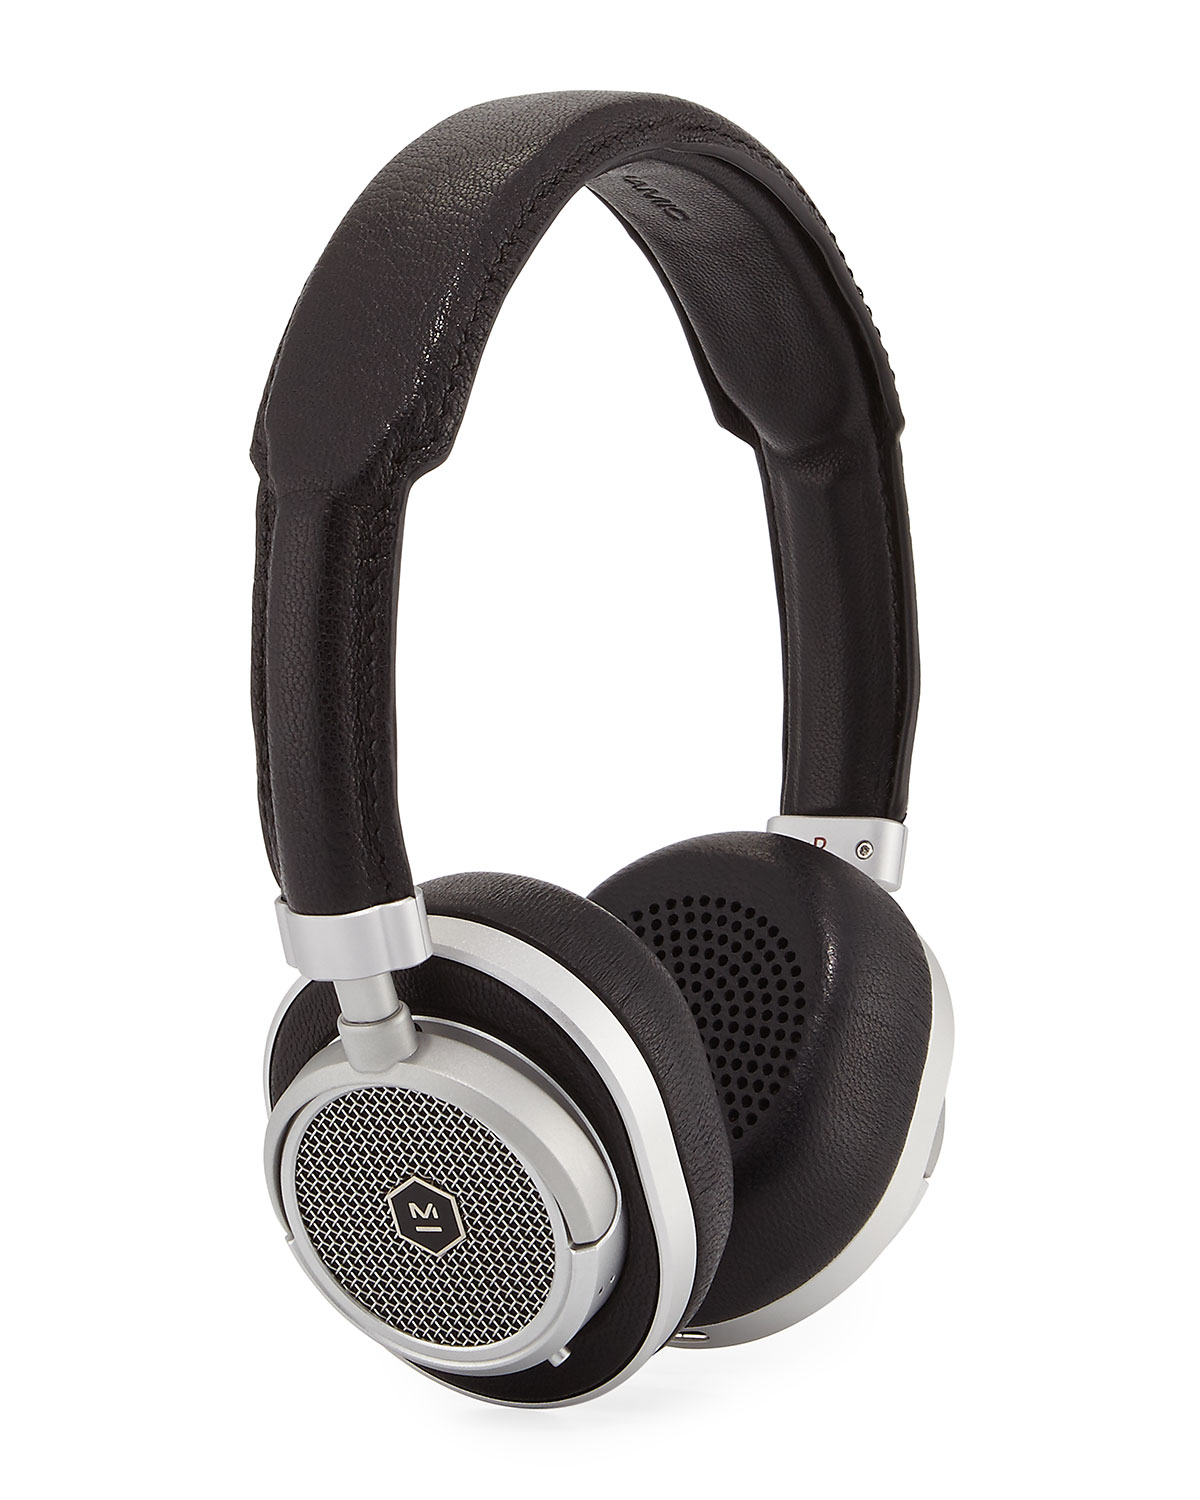 Imported Headphones Neiman Marcus Bang Ampamp Olufsen Beoplay H3 Lightweight Earphone Silver Quick Look